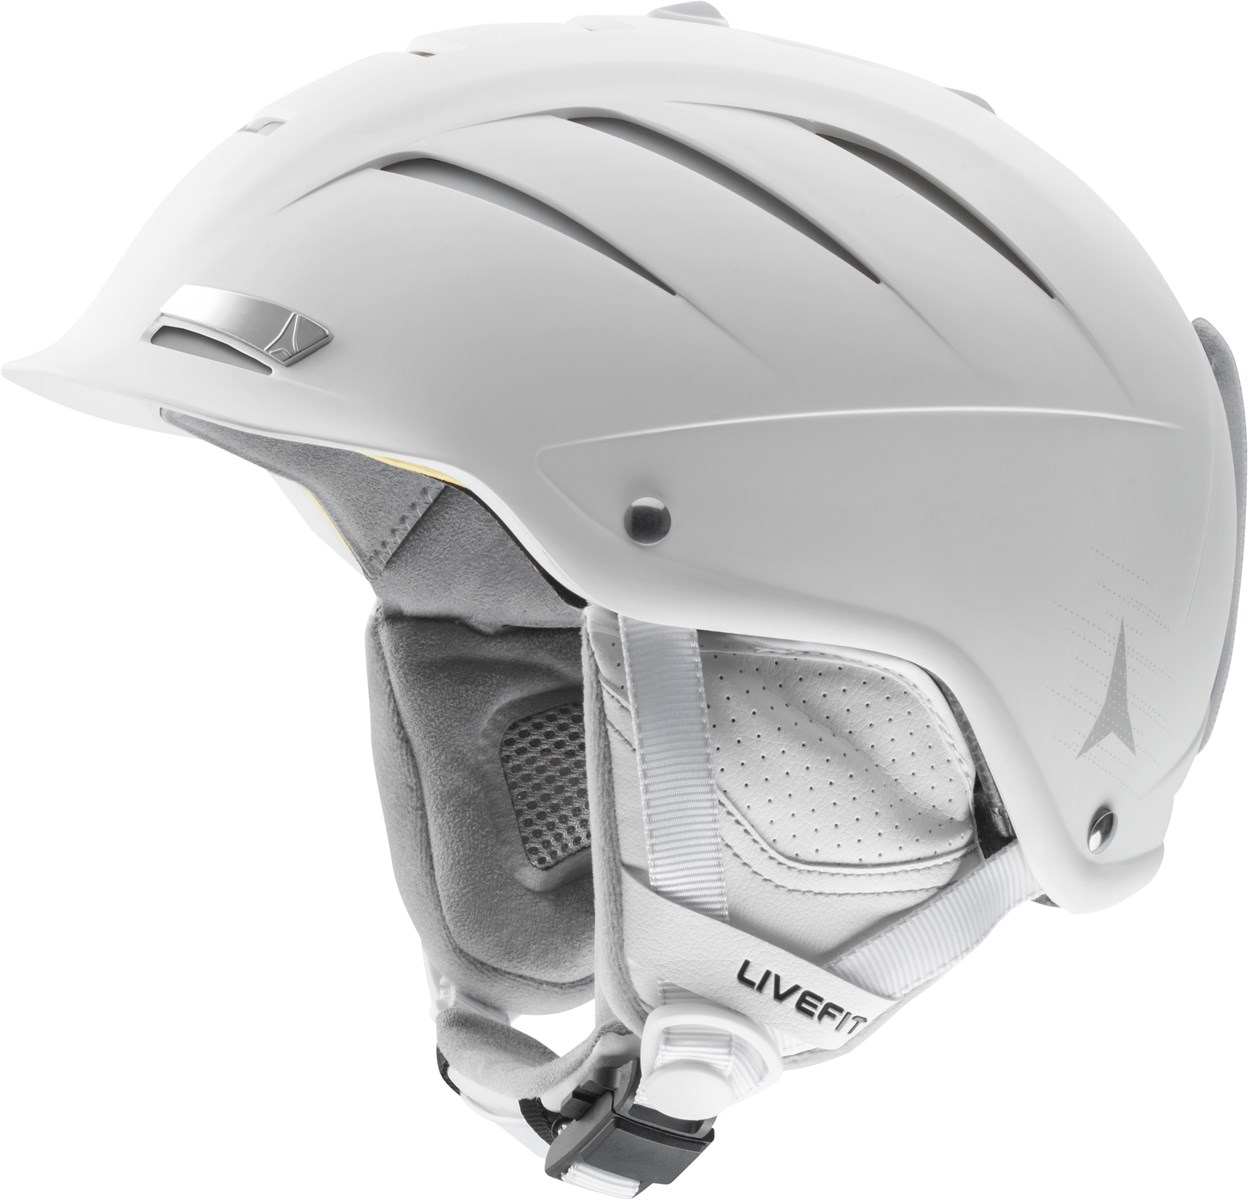 0f7e9d0d98d Atomic Affinity LF W Ladies Ski Helmet White. 0 (Be the first to add a  review!)